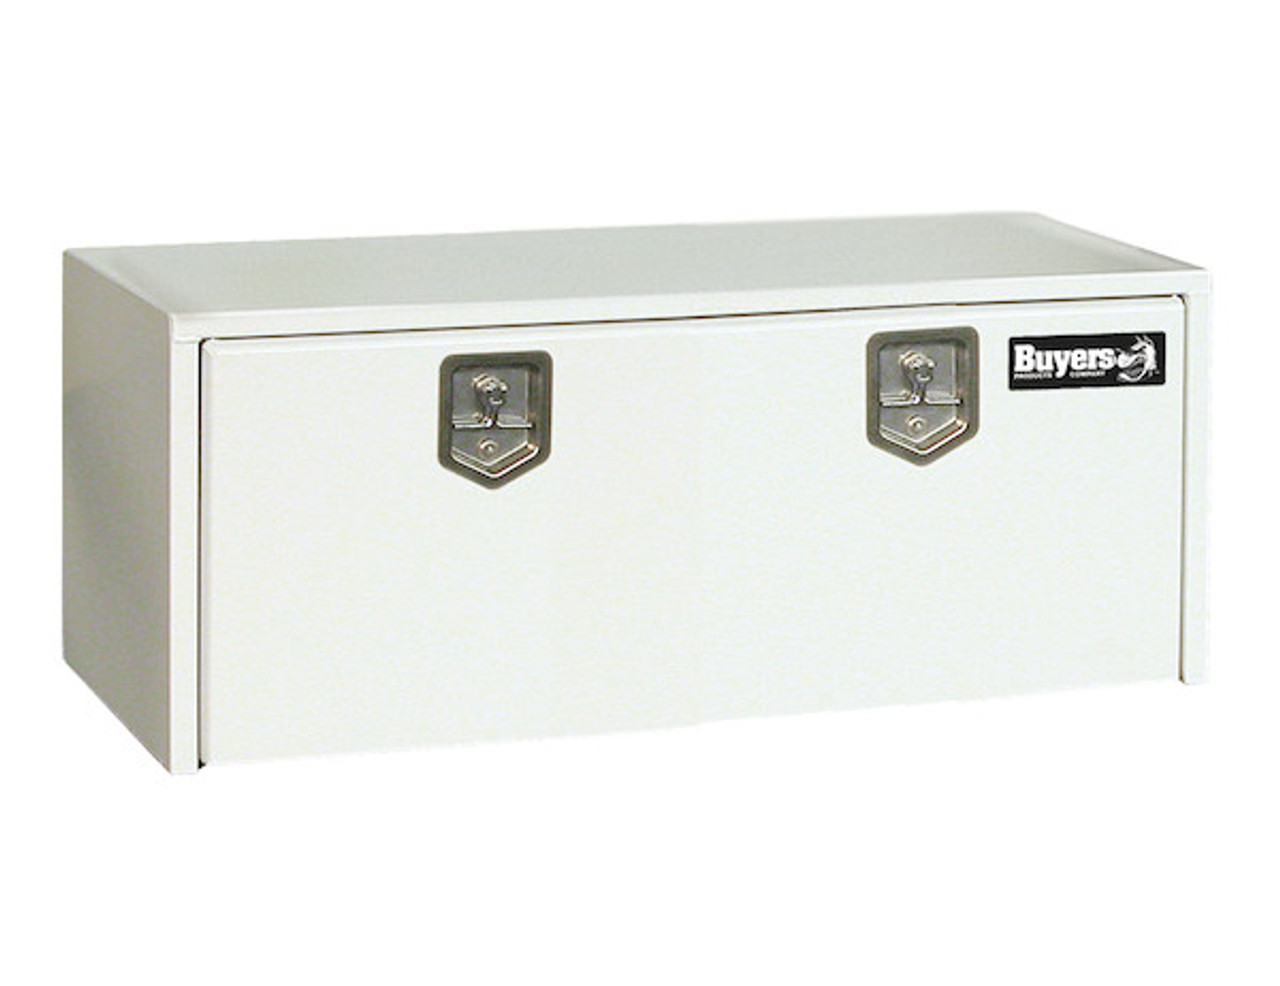 "1702417 BUYERS PRODUCTS WHITE STEEL UNDERBODY TRUCK TOOLBOX 18""HX18""DX66""W"